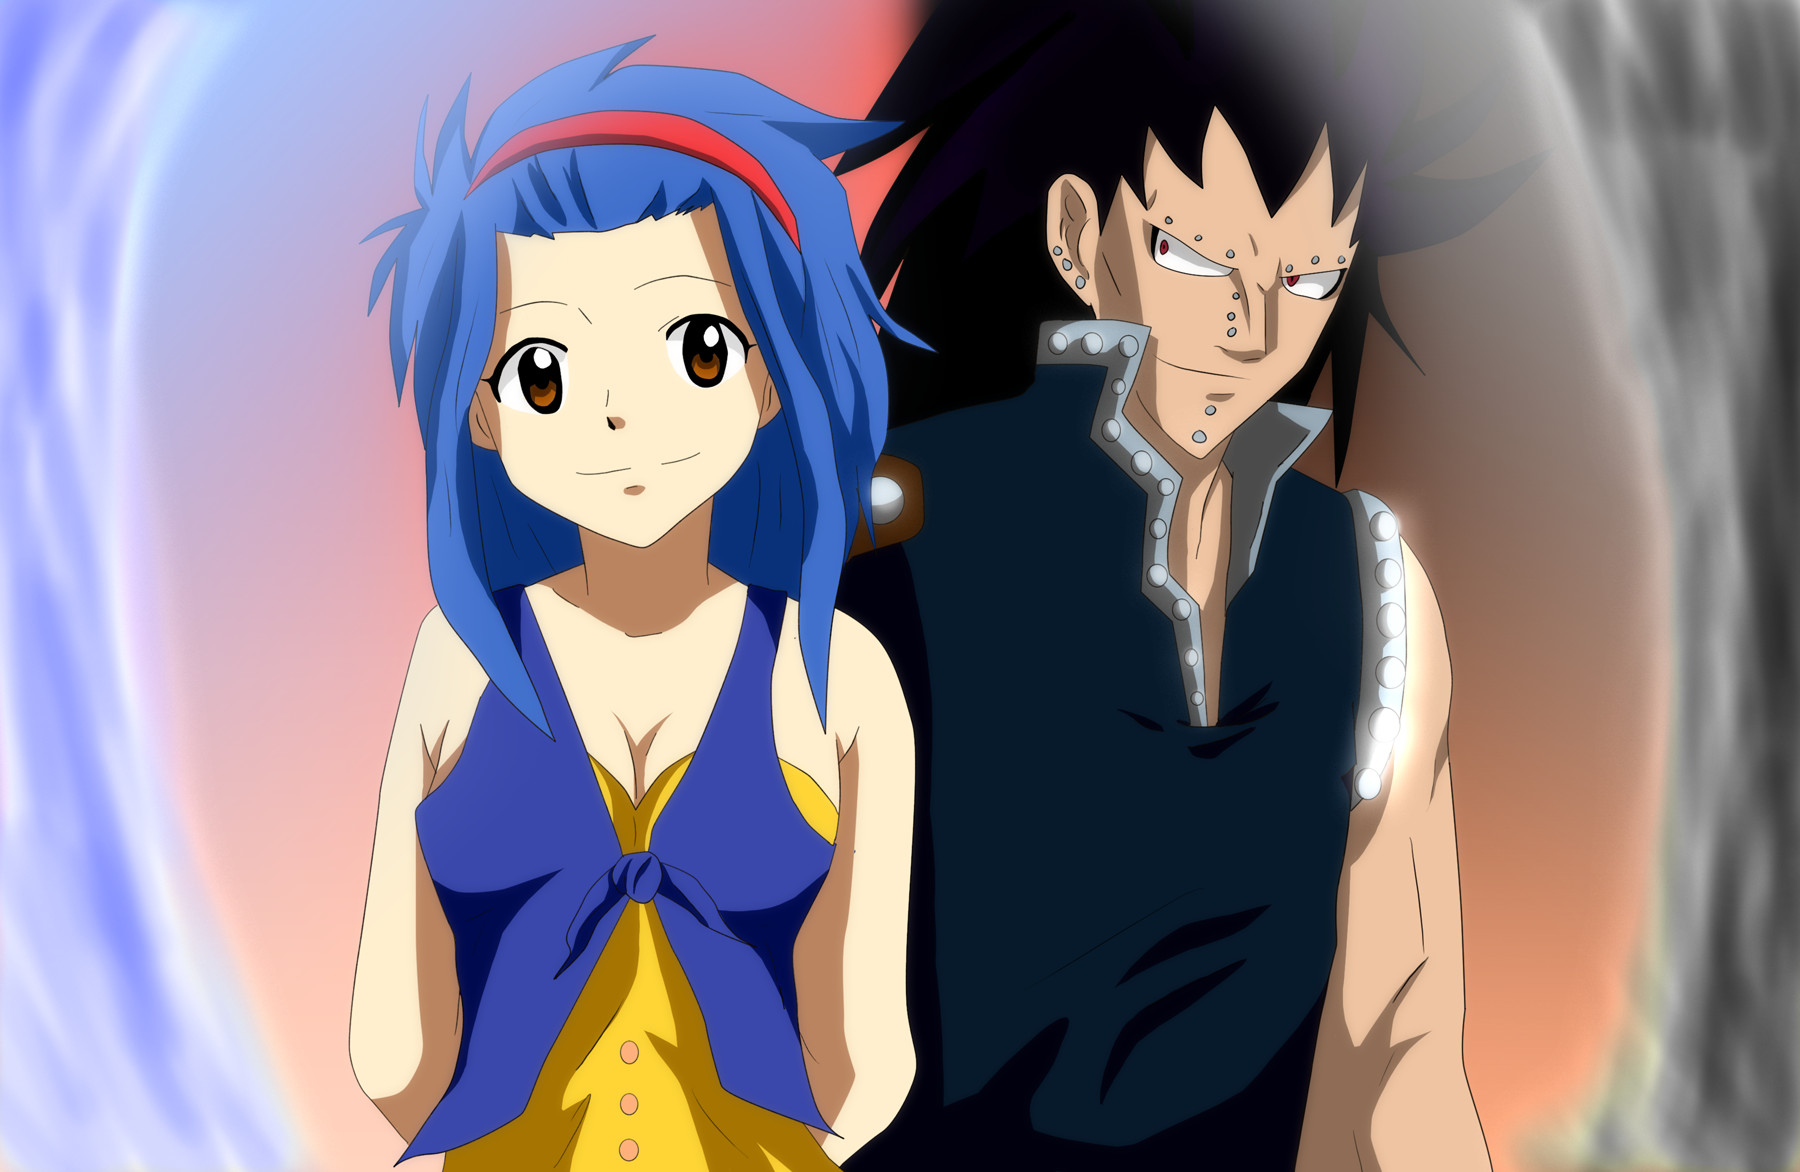 gajeel and levy   levy mcgarden photo 34714545   fanpop